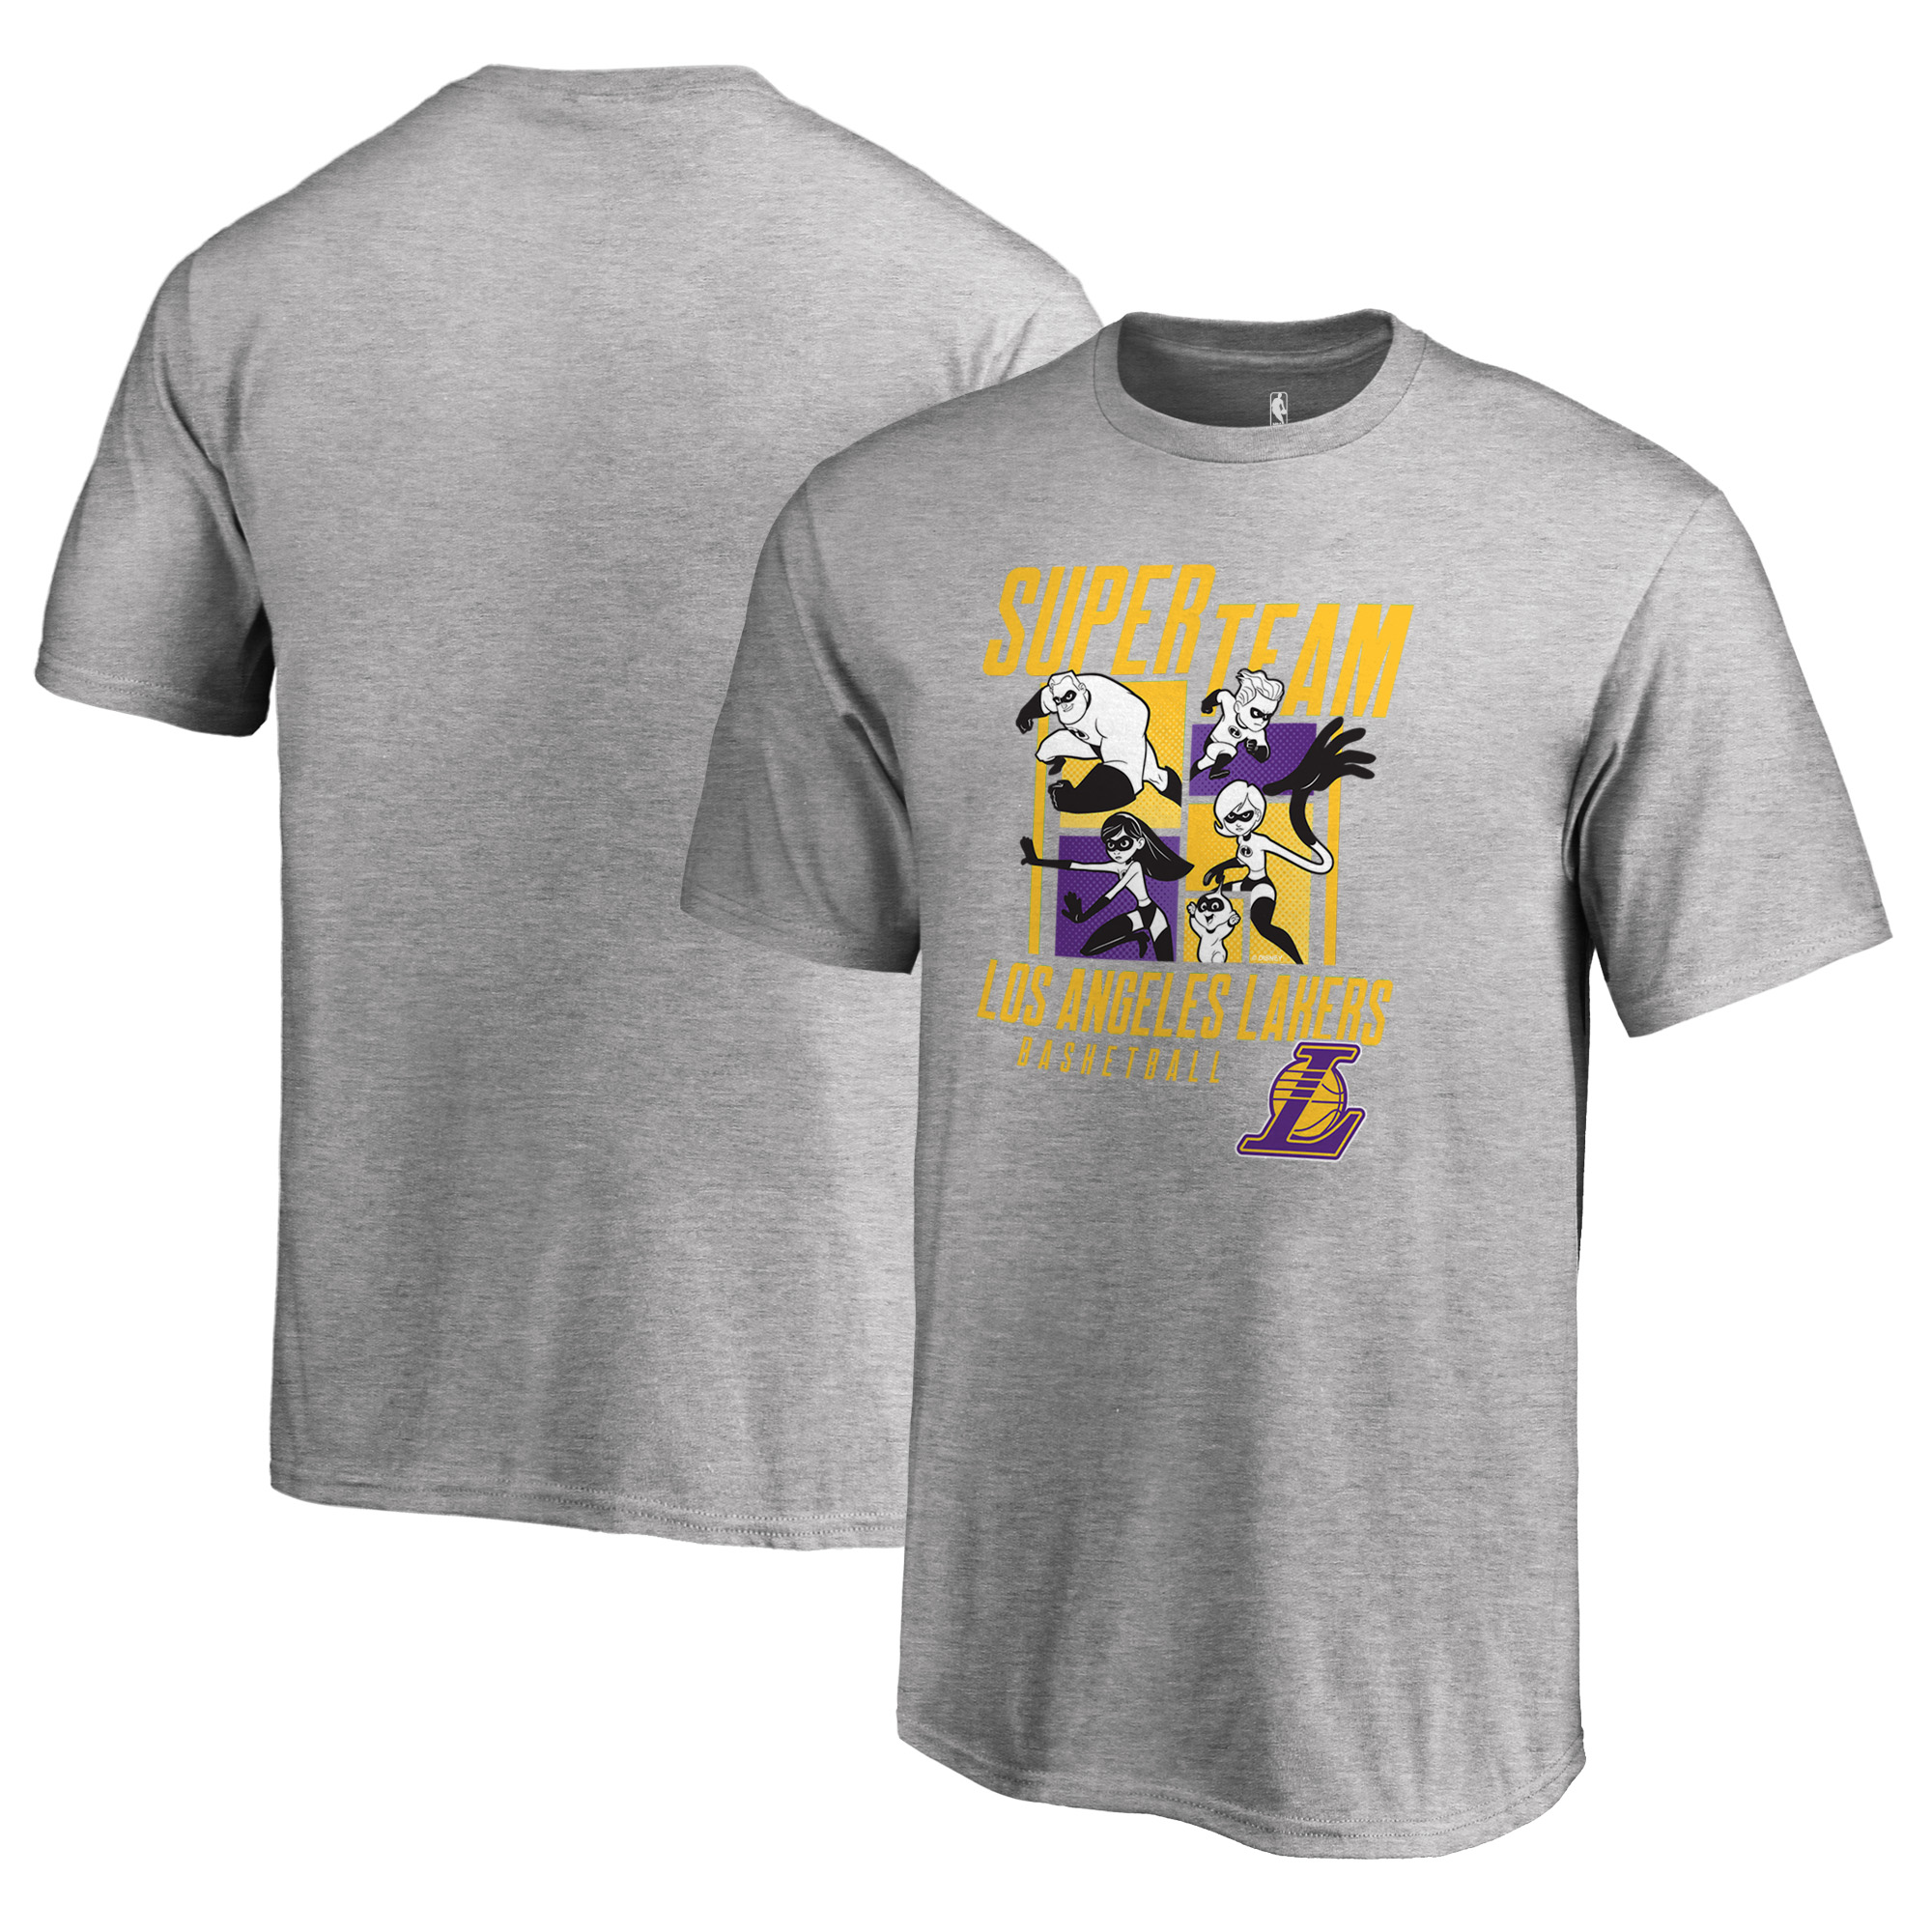 Los Angeles Lakers Fanatics Branded Youth Disney Pixar The Incredibles Super Team T-Shirt - Heathered Gray